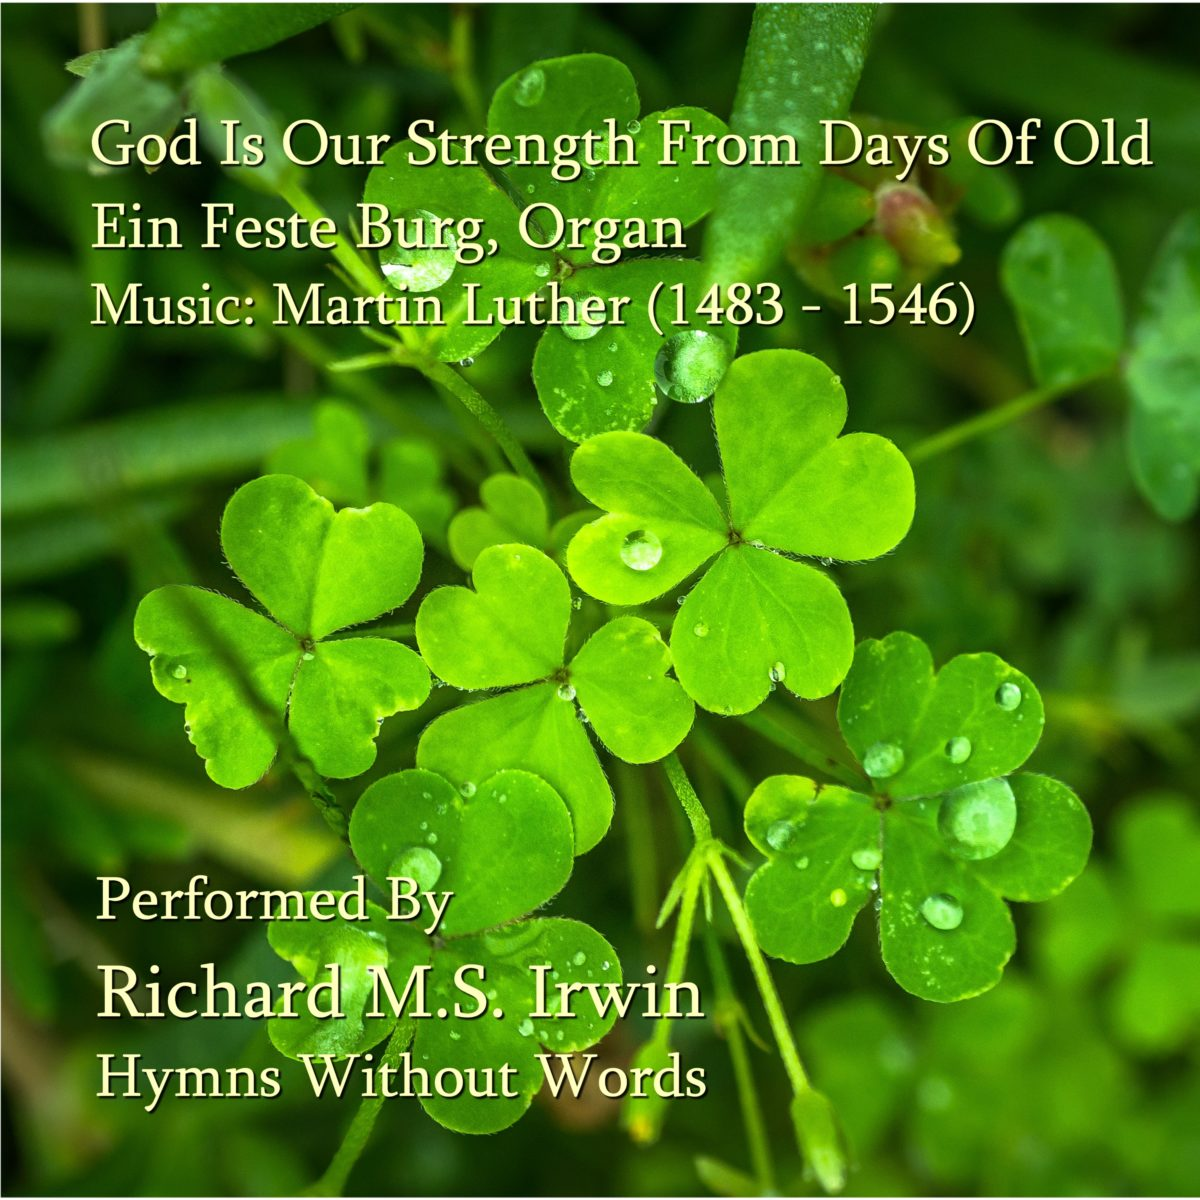 God Is Our Strength From Days Of Old (Ein Feste Burg, Organ, 4 verses)